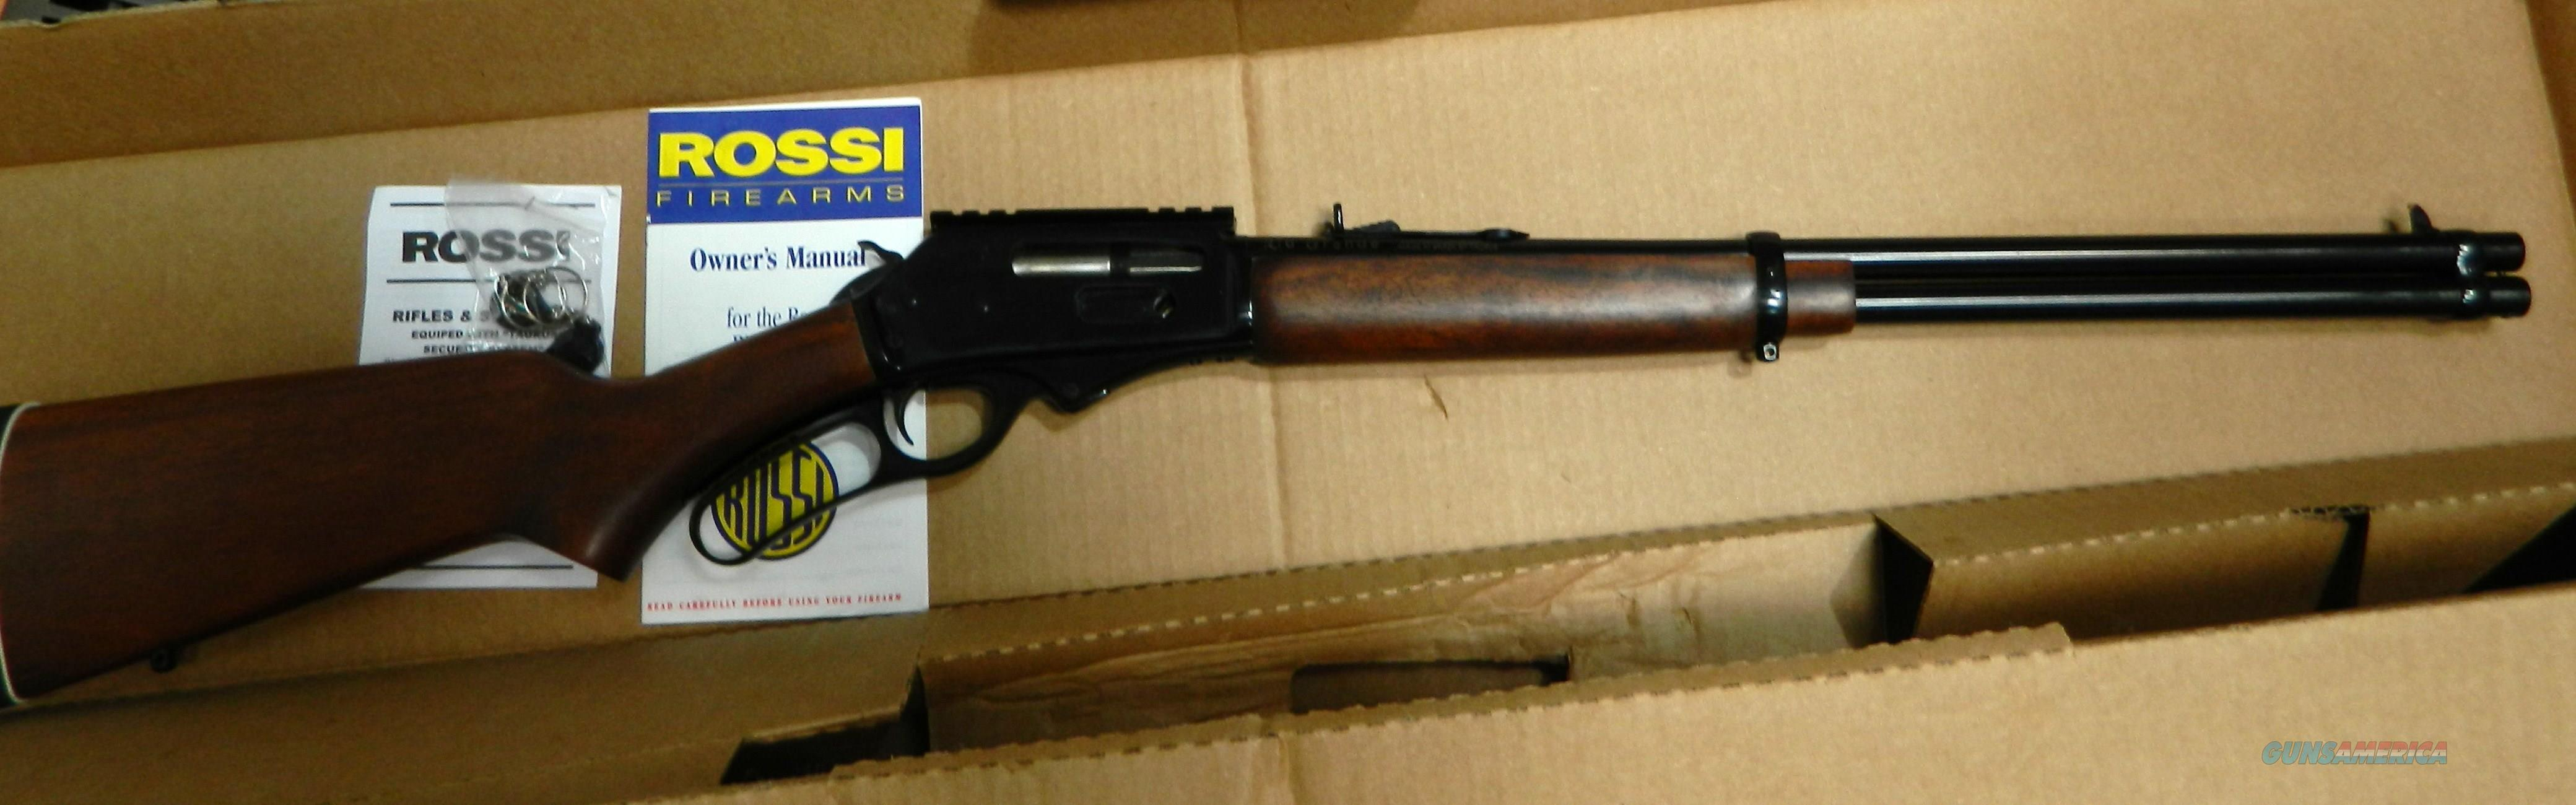 CARBINE Rossi reo grande model made by   Taurus 30-30 cal. lever action carbine  NIB  Guns > Rifles > Rossi Rifles > Other